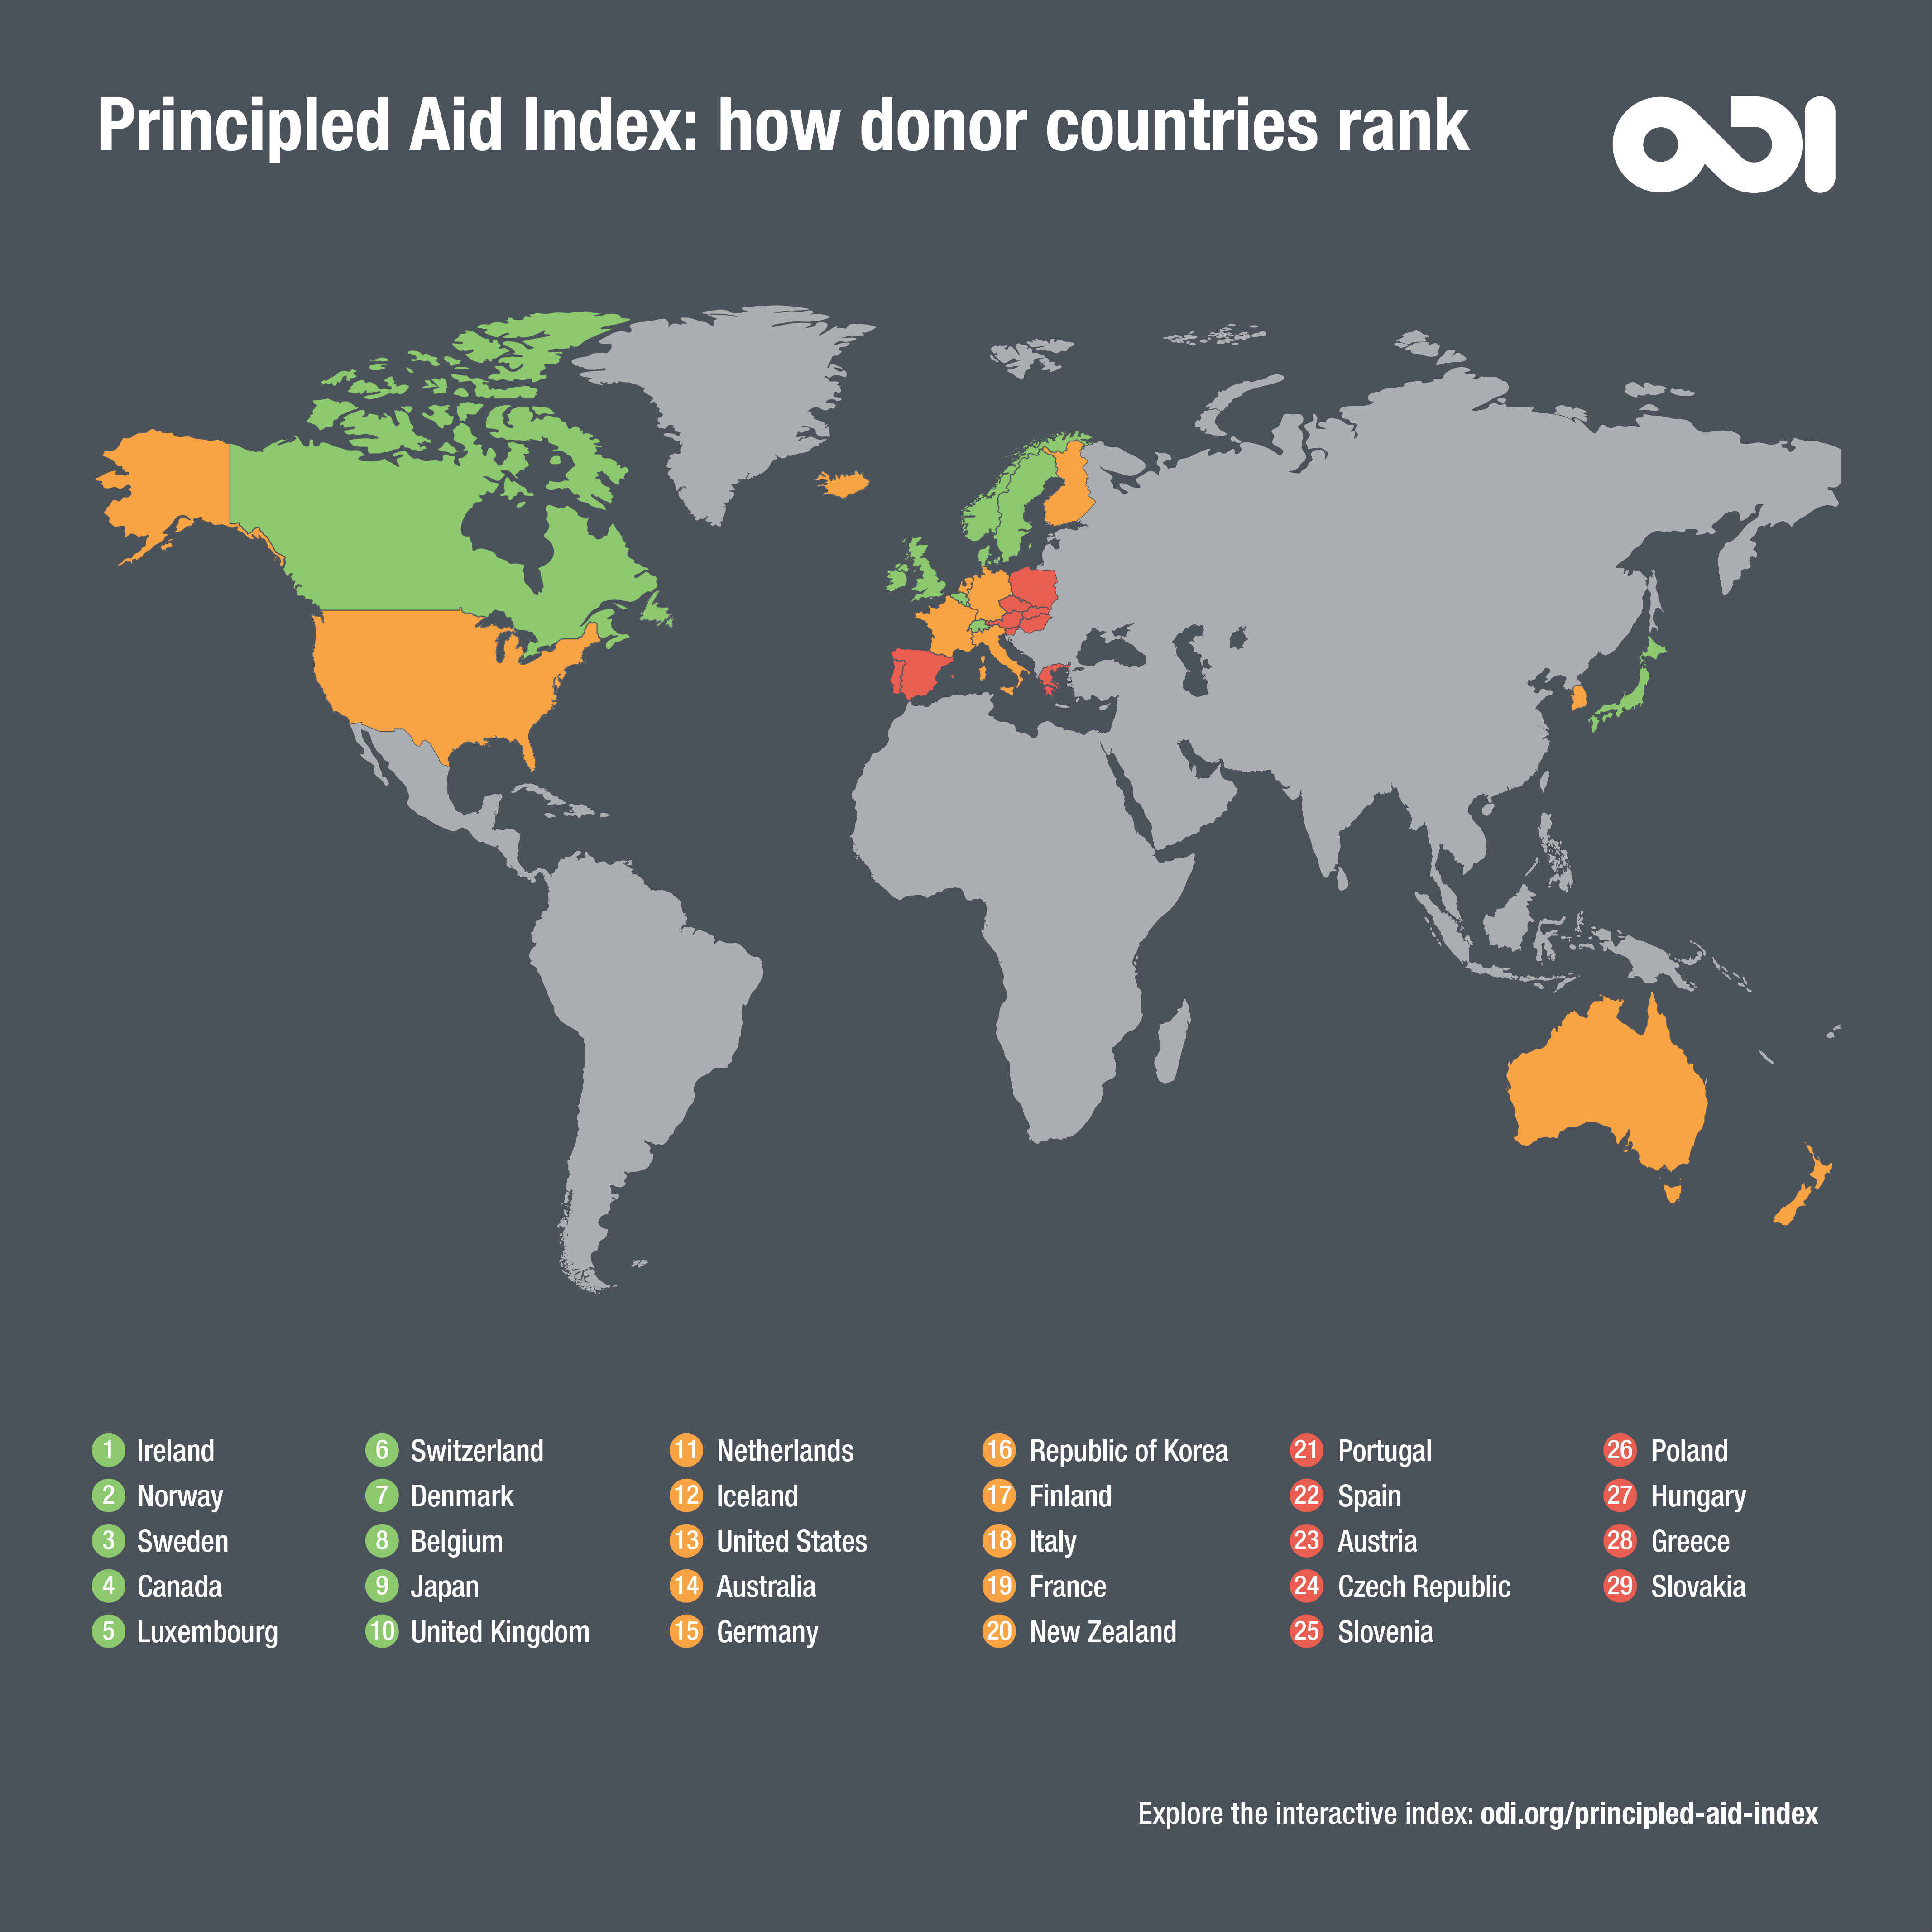 Principled Aid Index 2020: how donor countries rank